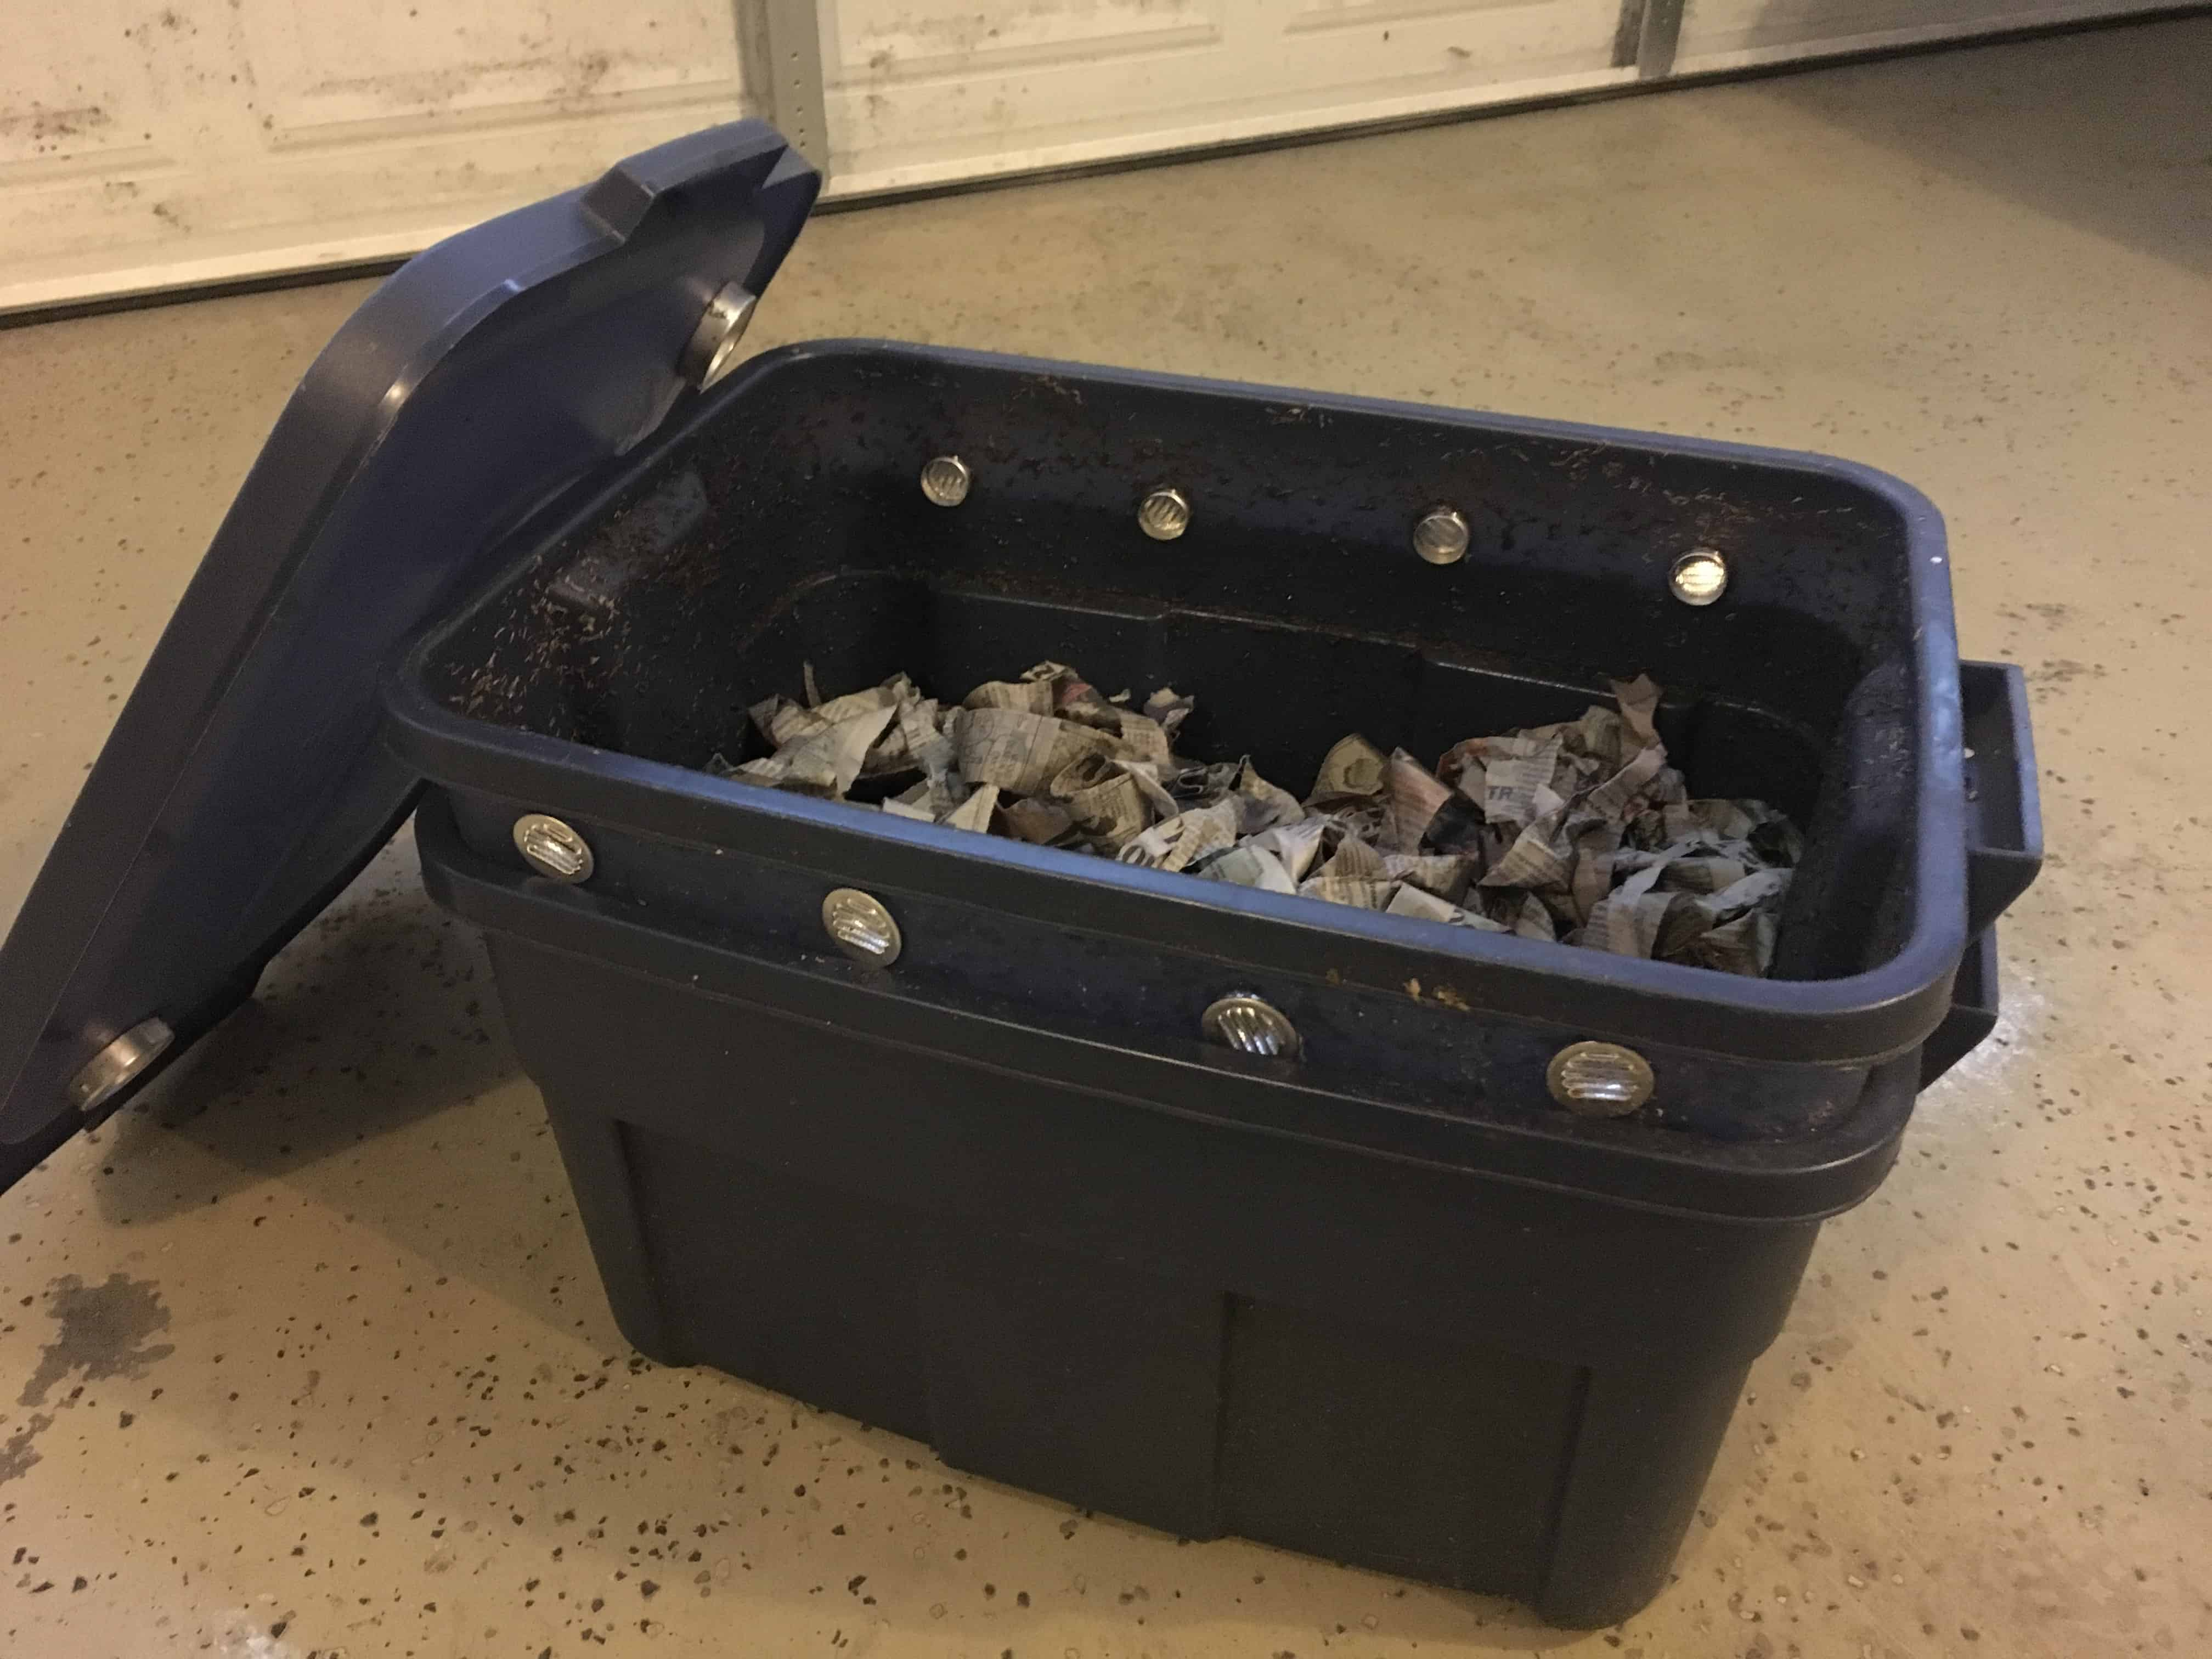 Small worm bin made from a Rubbermaid tote. https://trimazing.com/